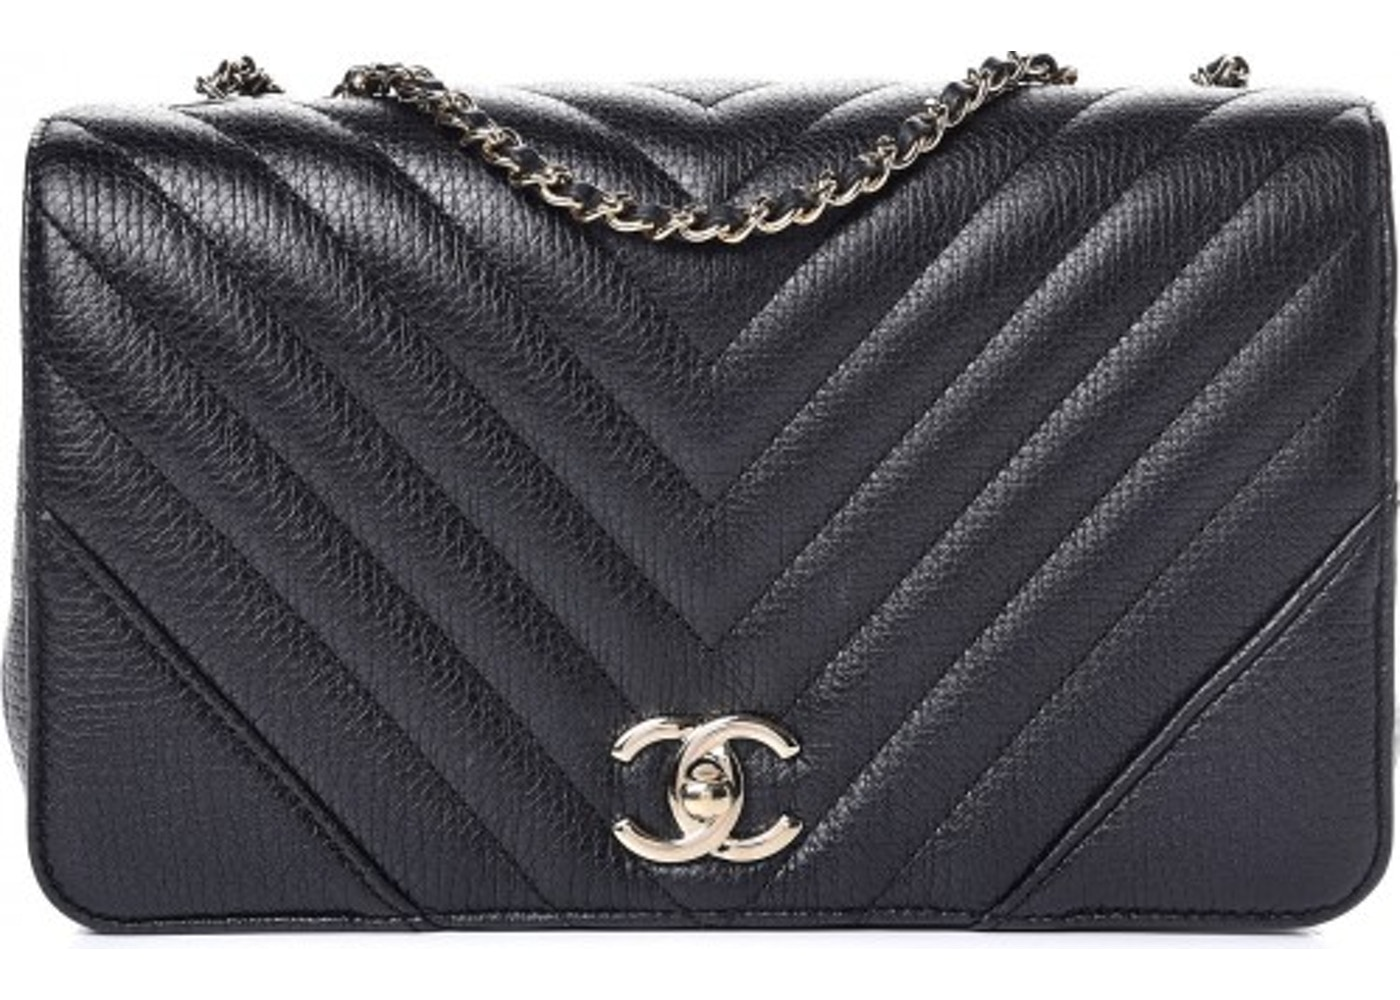 876ab42b816b Chanel Flap Bag Quilted Metallic Small Black